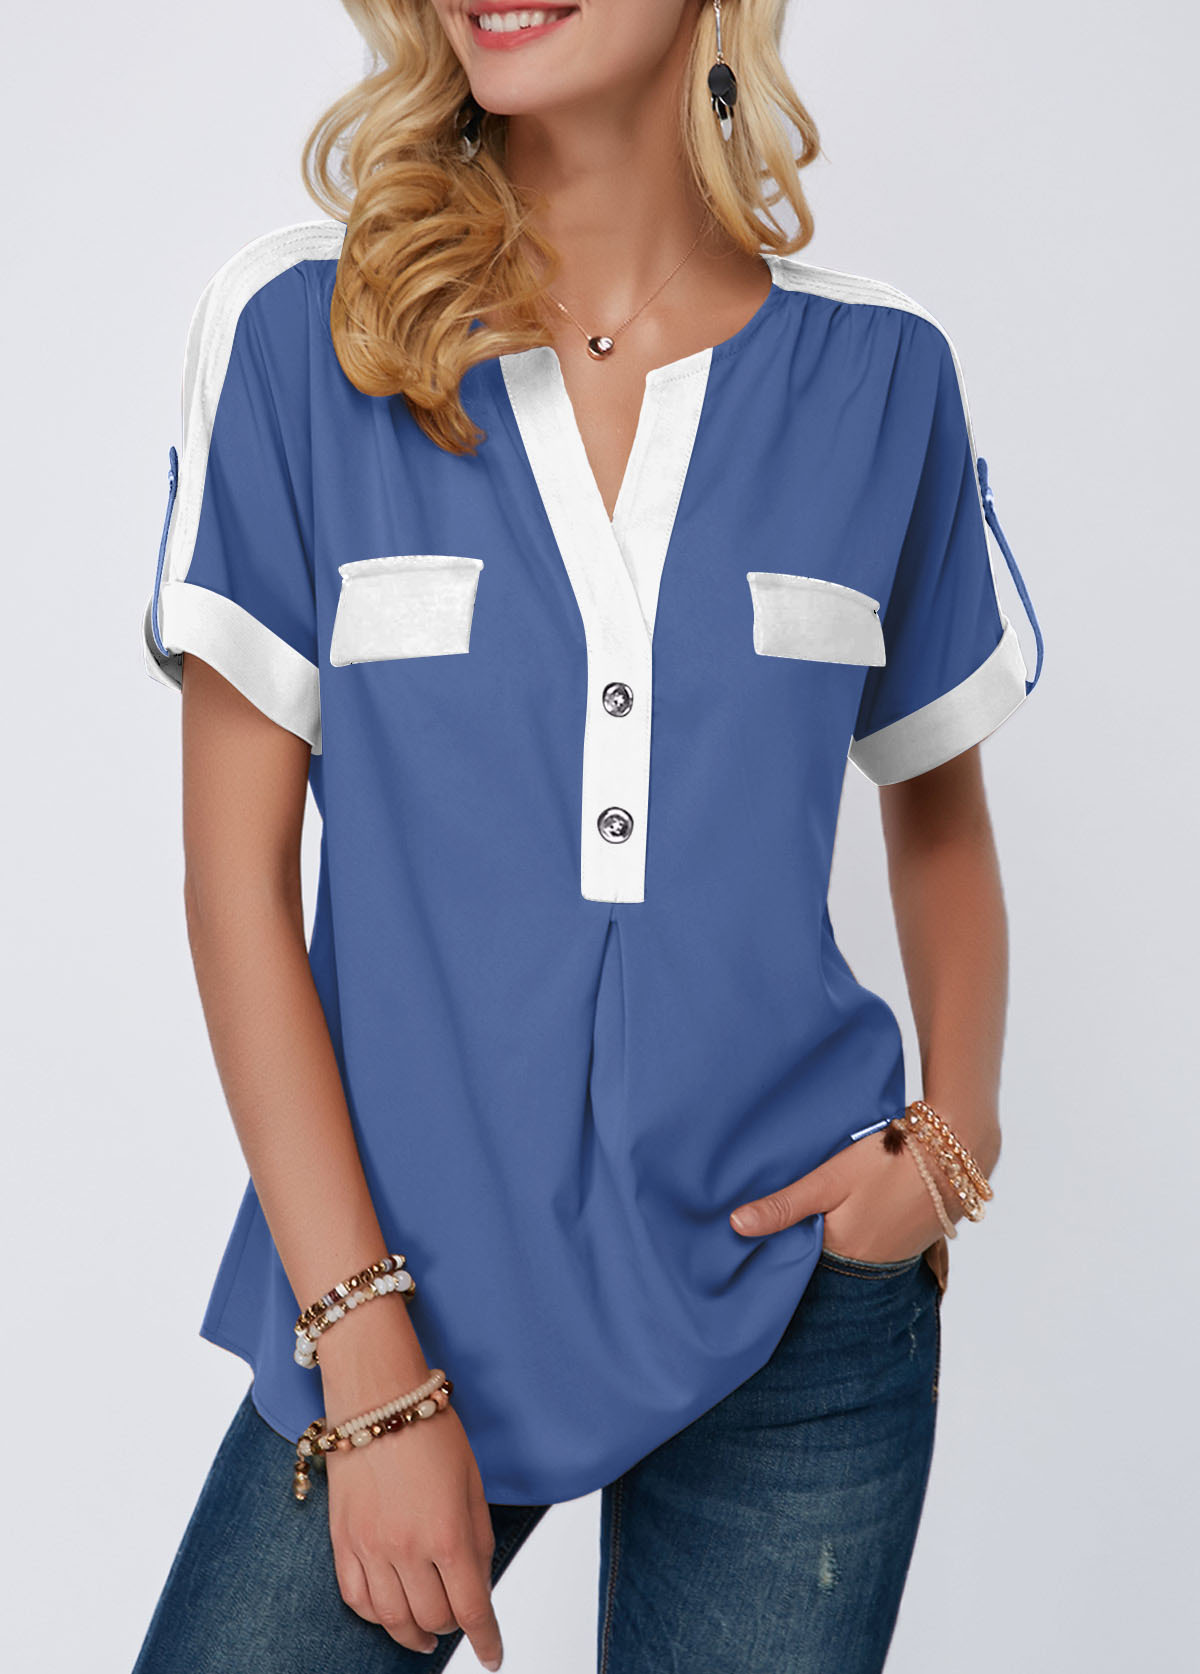 cad403db3c239e Split Neck Roll Tab Sleeve Button Detail Blouse   Rosewe.com - USD ...